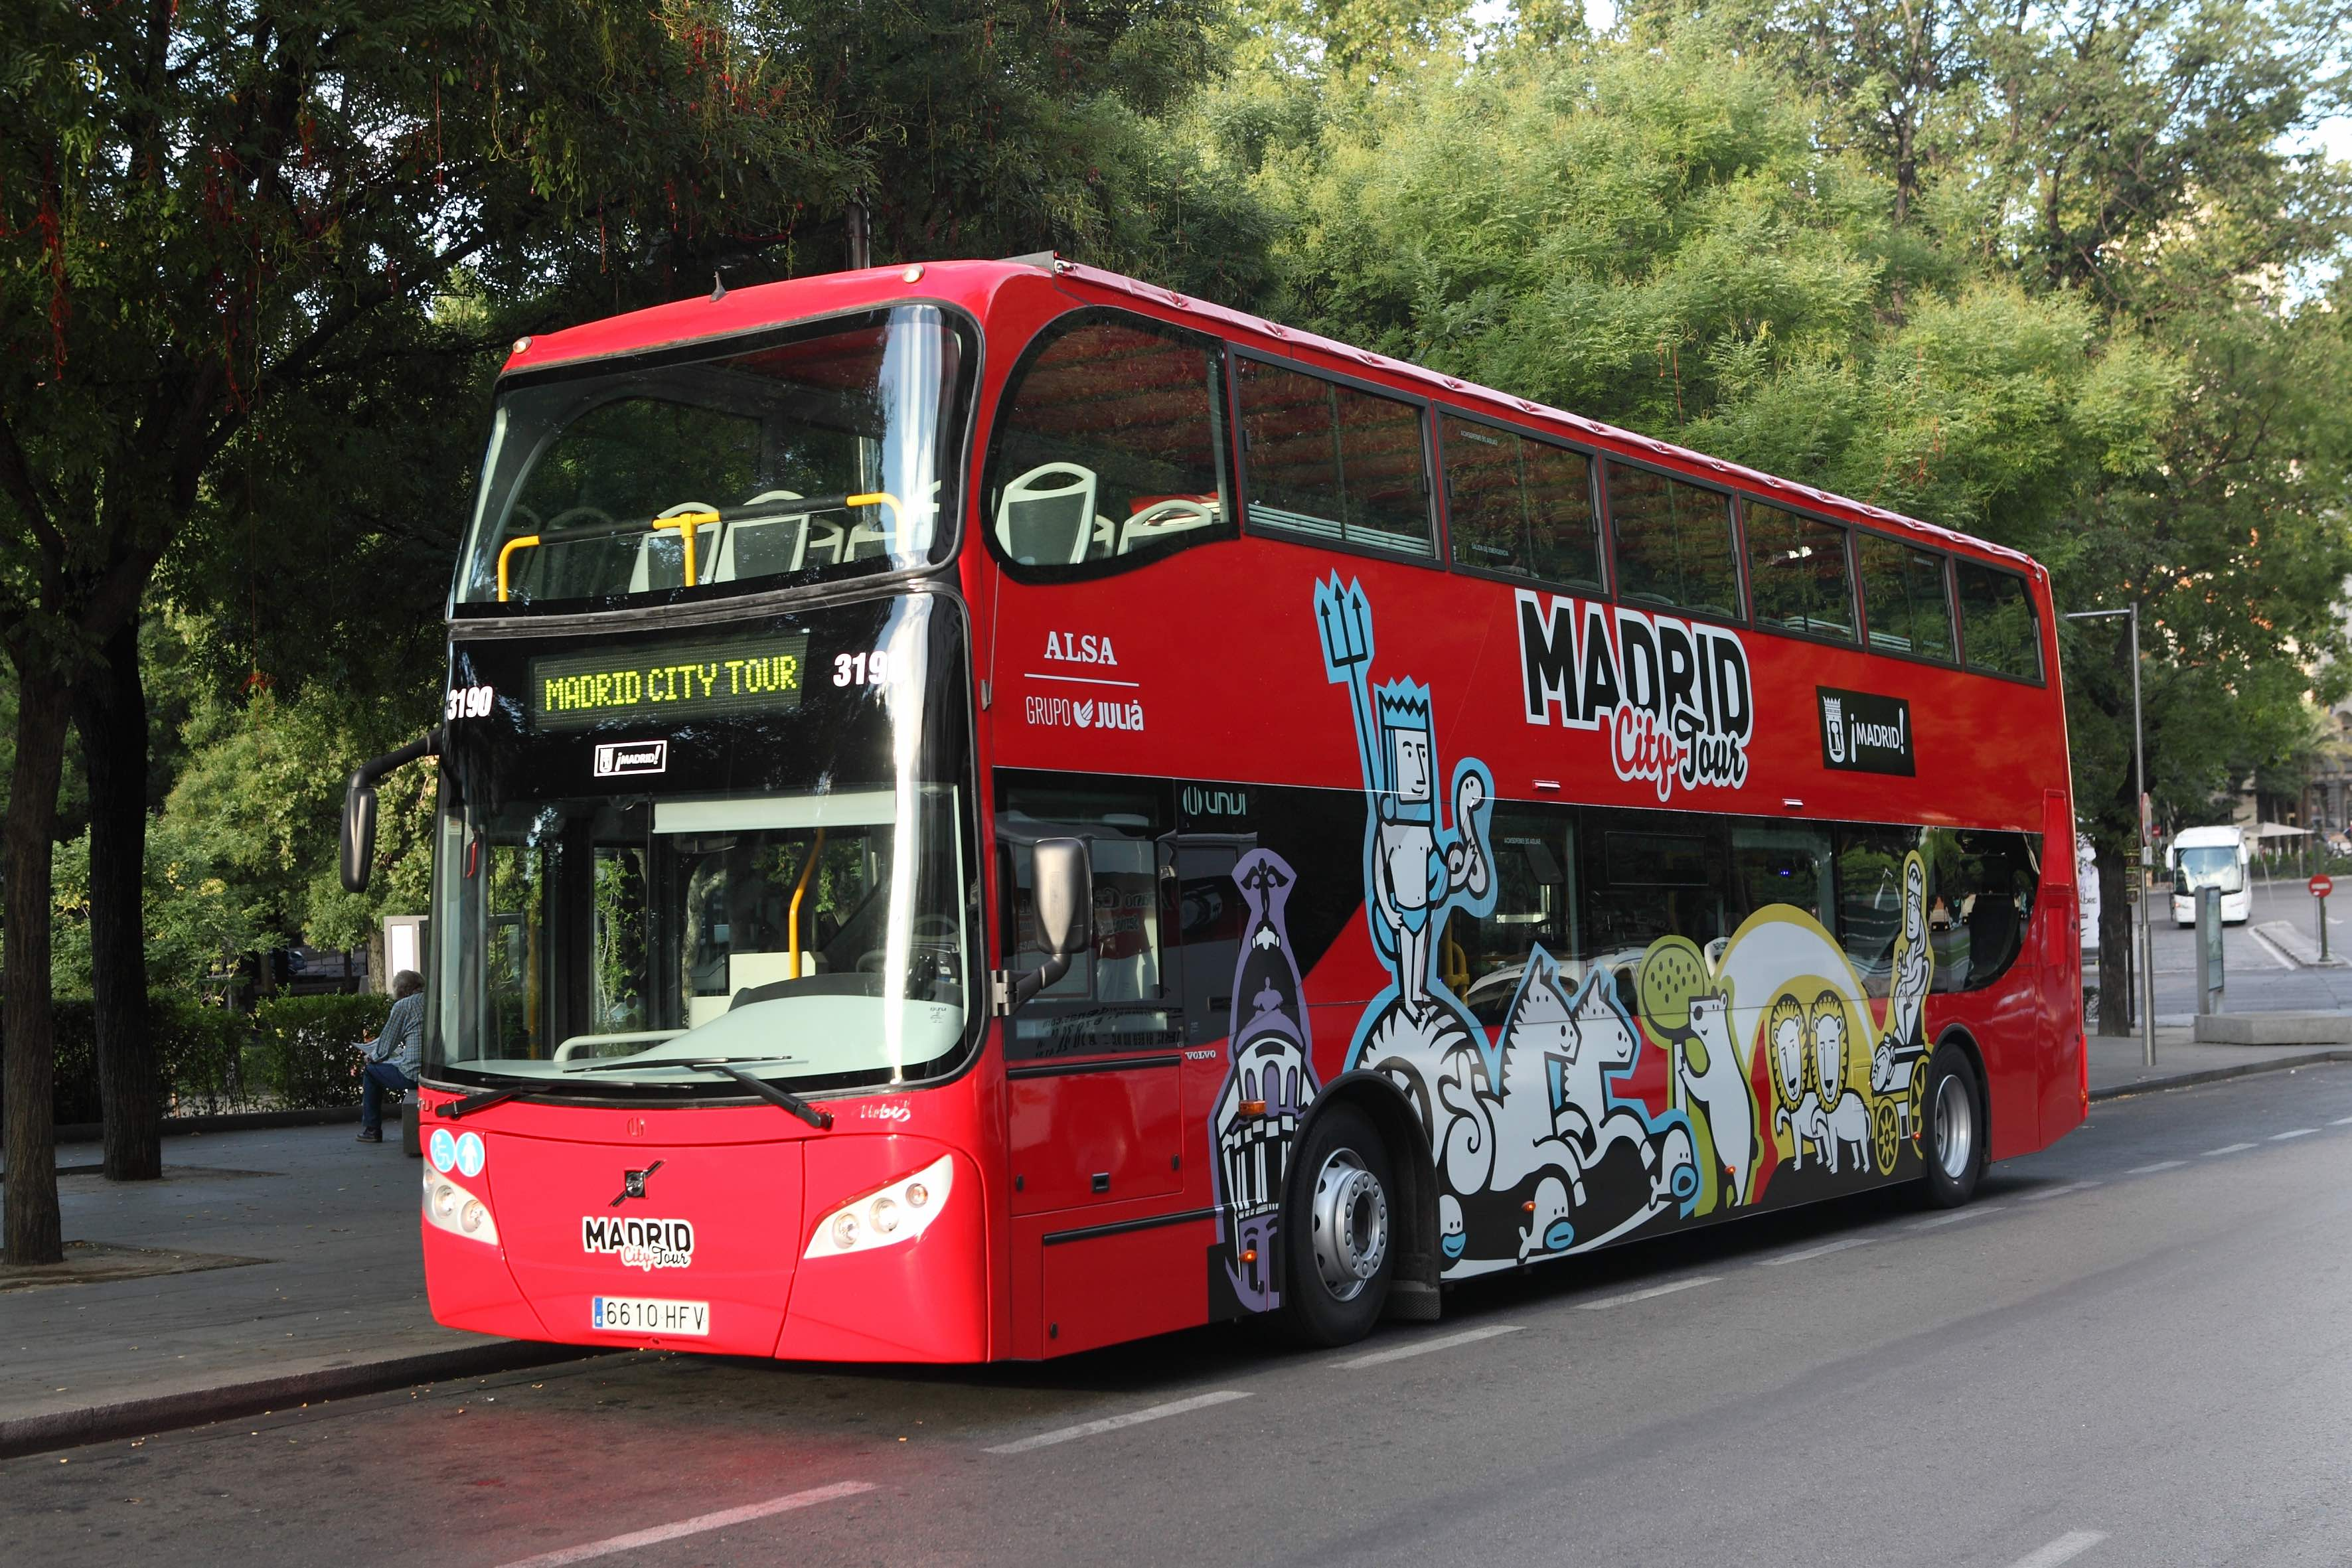 Madrid City Hop-on Hop-off Sightseeing Bus